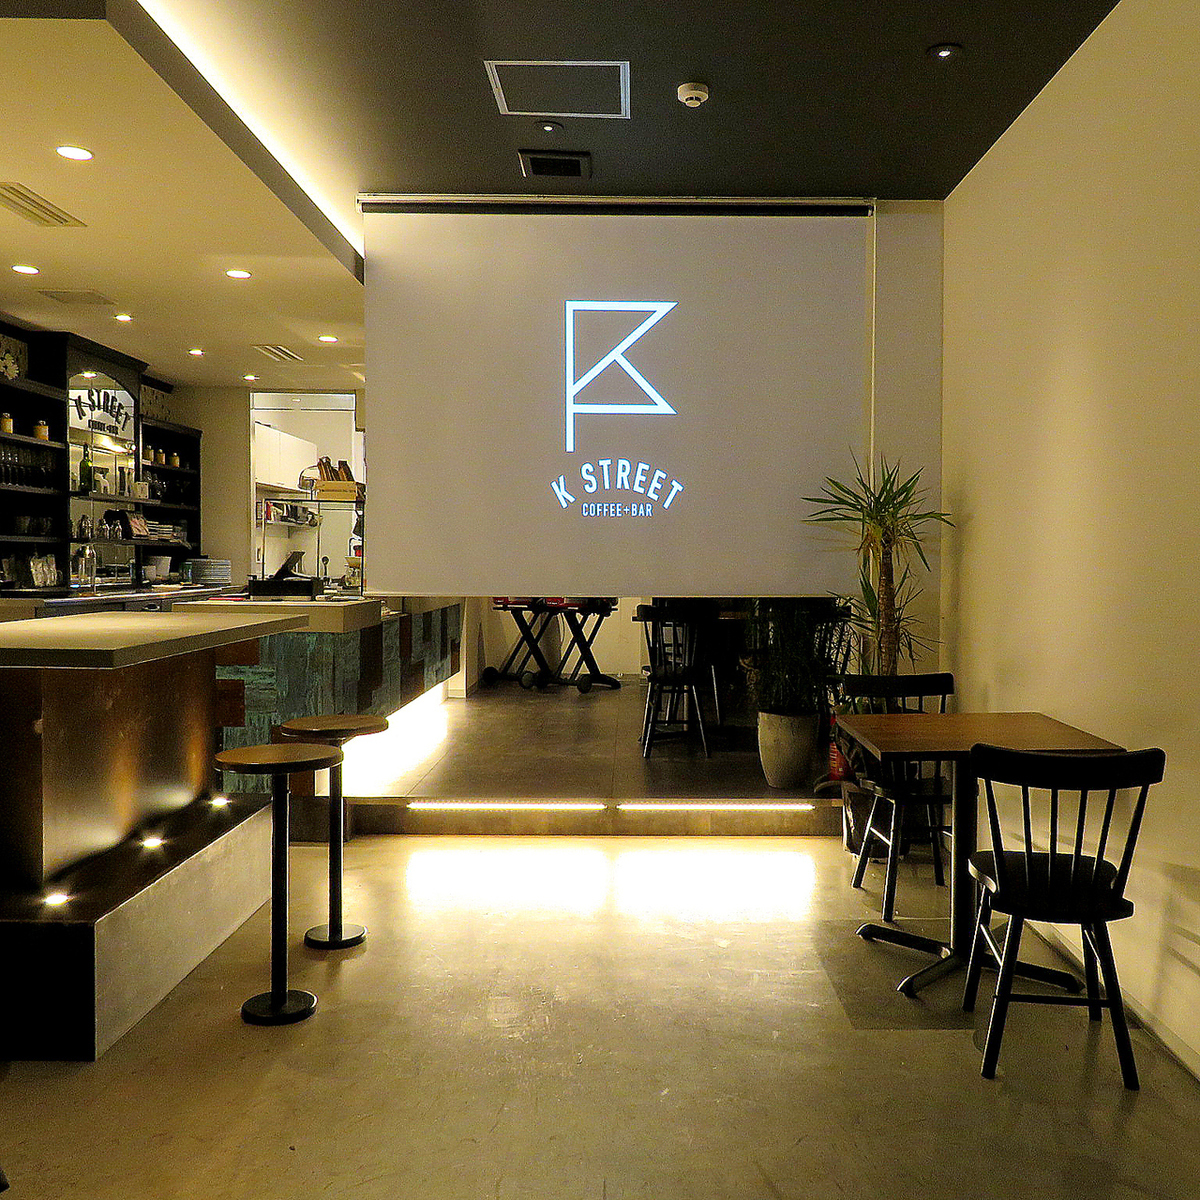 Store rental for 50 people up to 100 people ♪